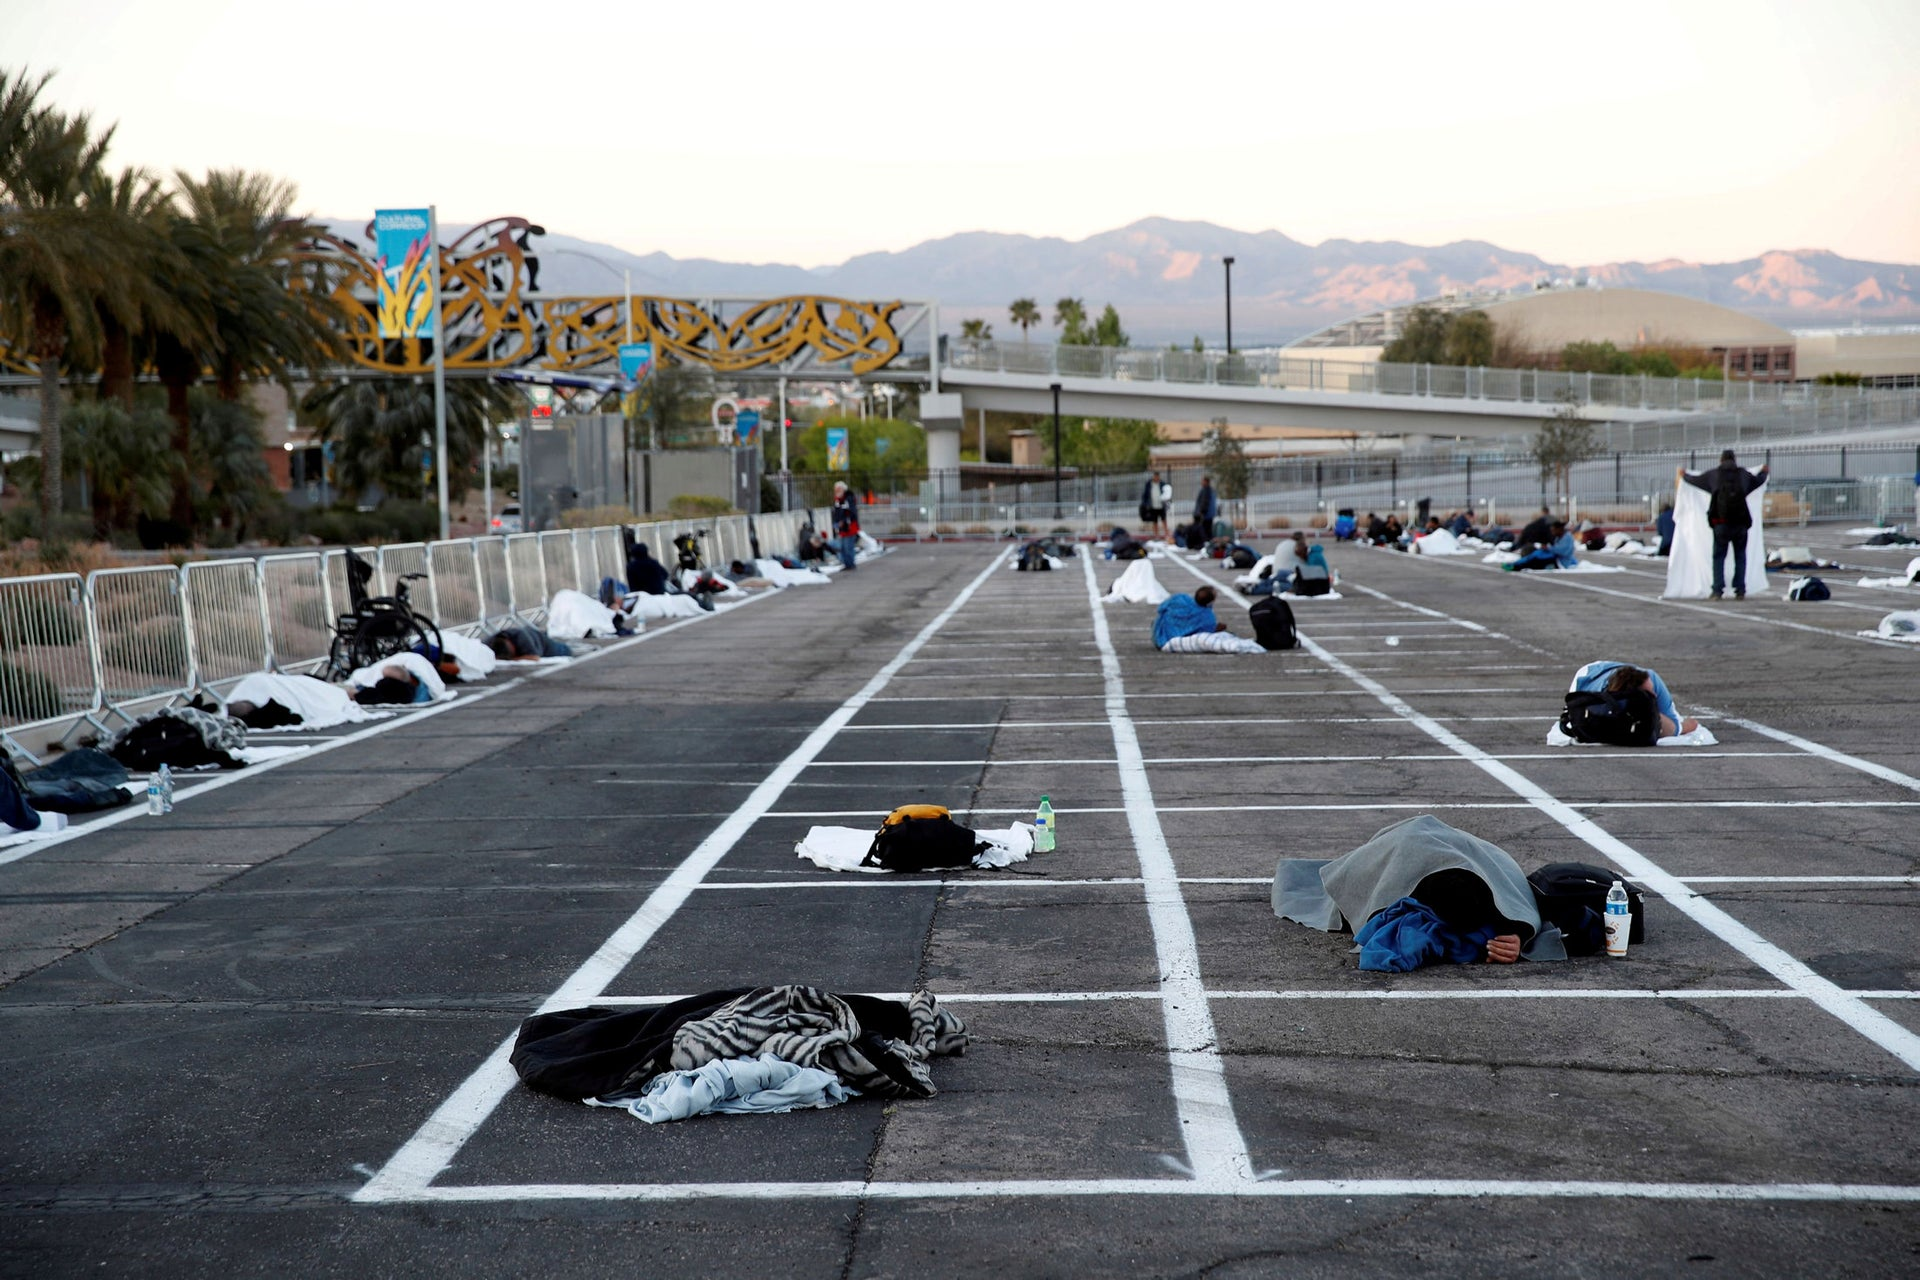 Homeless people sleep in a temporary parking lot shelter at Cashman Center, with spaces marked for social distancing to help slow the spread of the coronavirus in Las Vegas, Nevada, March 30, 2020.